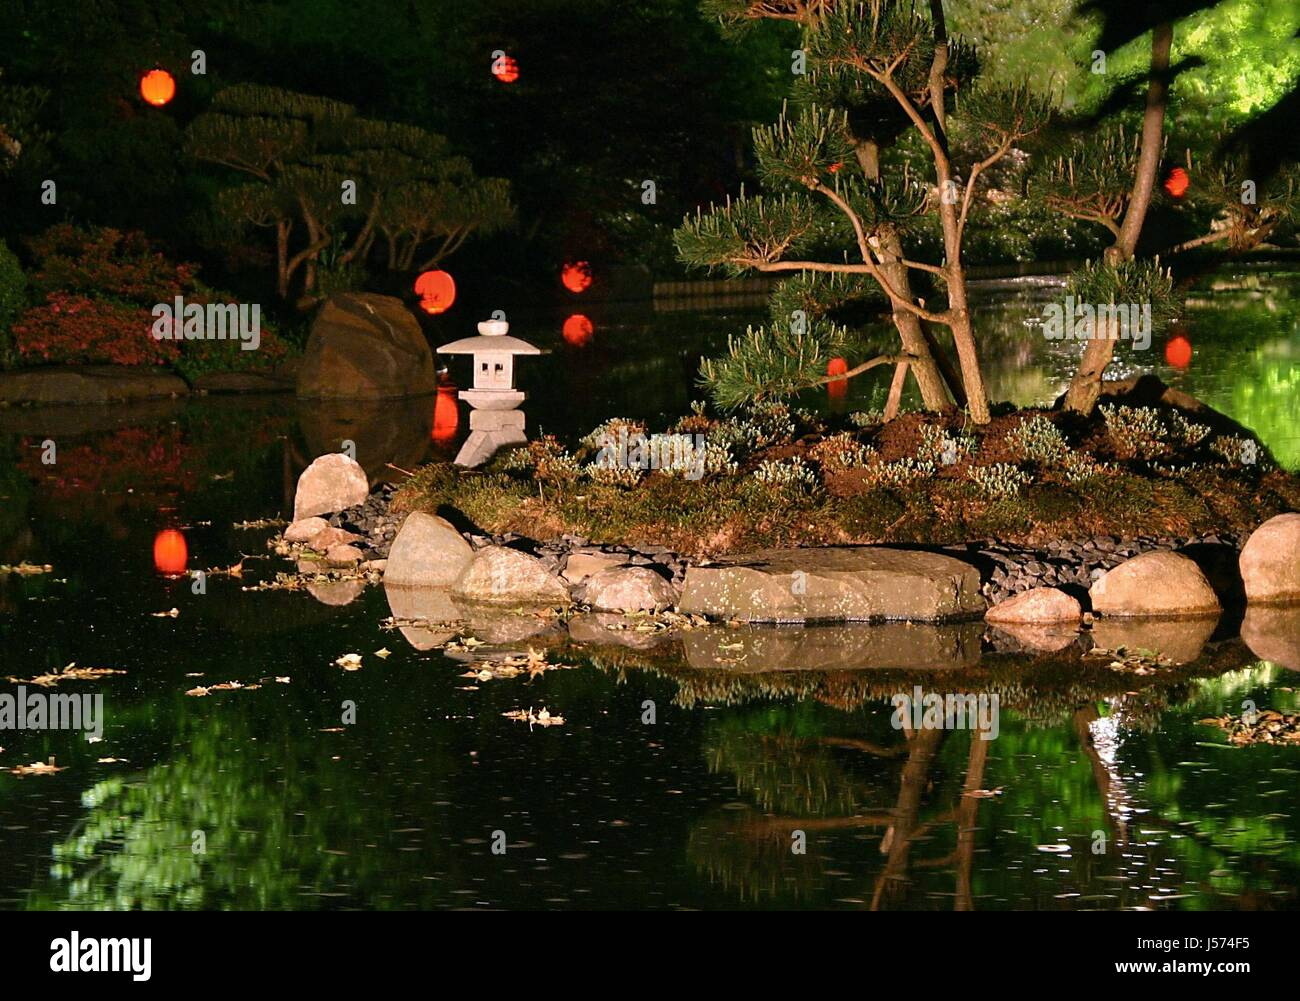 japanese garden at night Stock Photo: 140913449 - Alamy